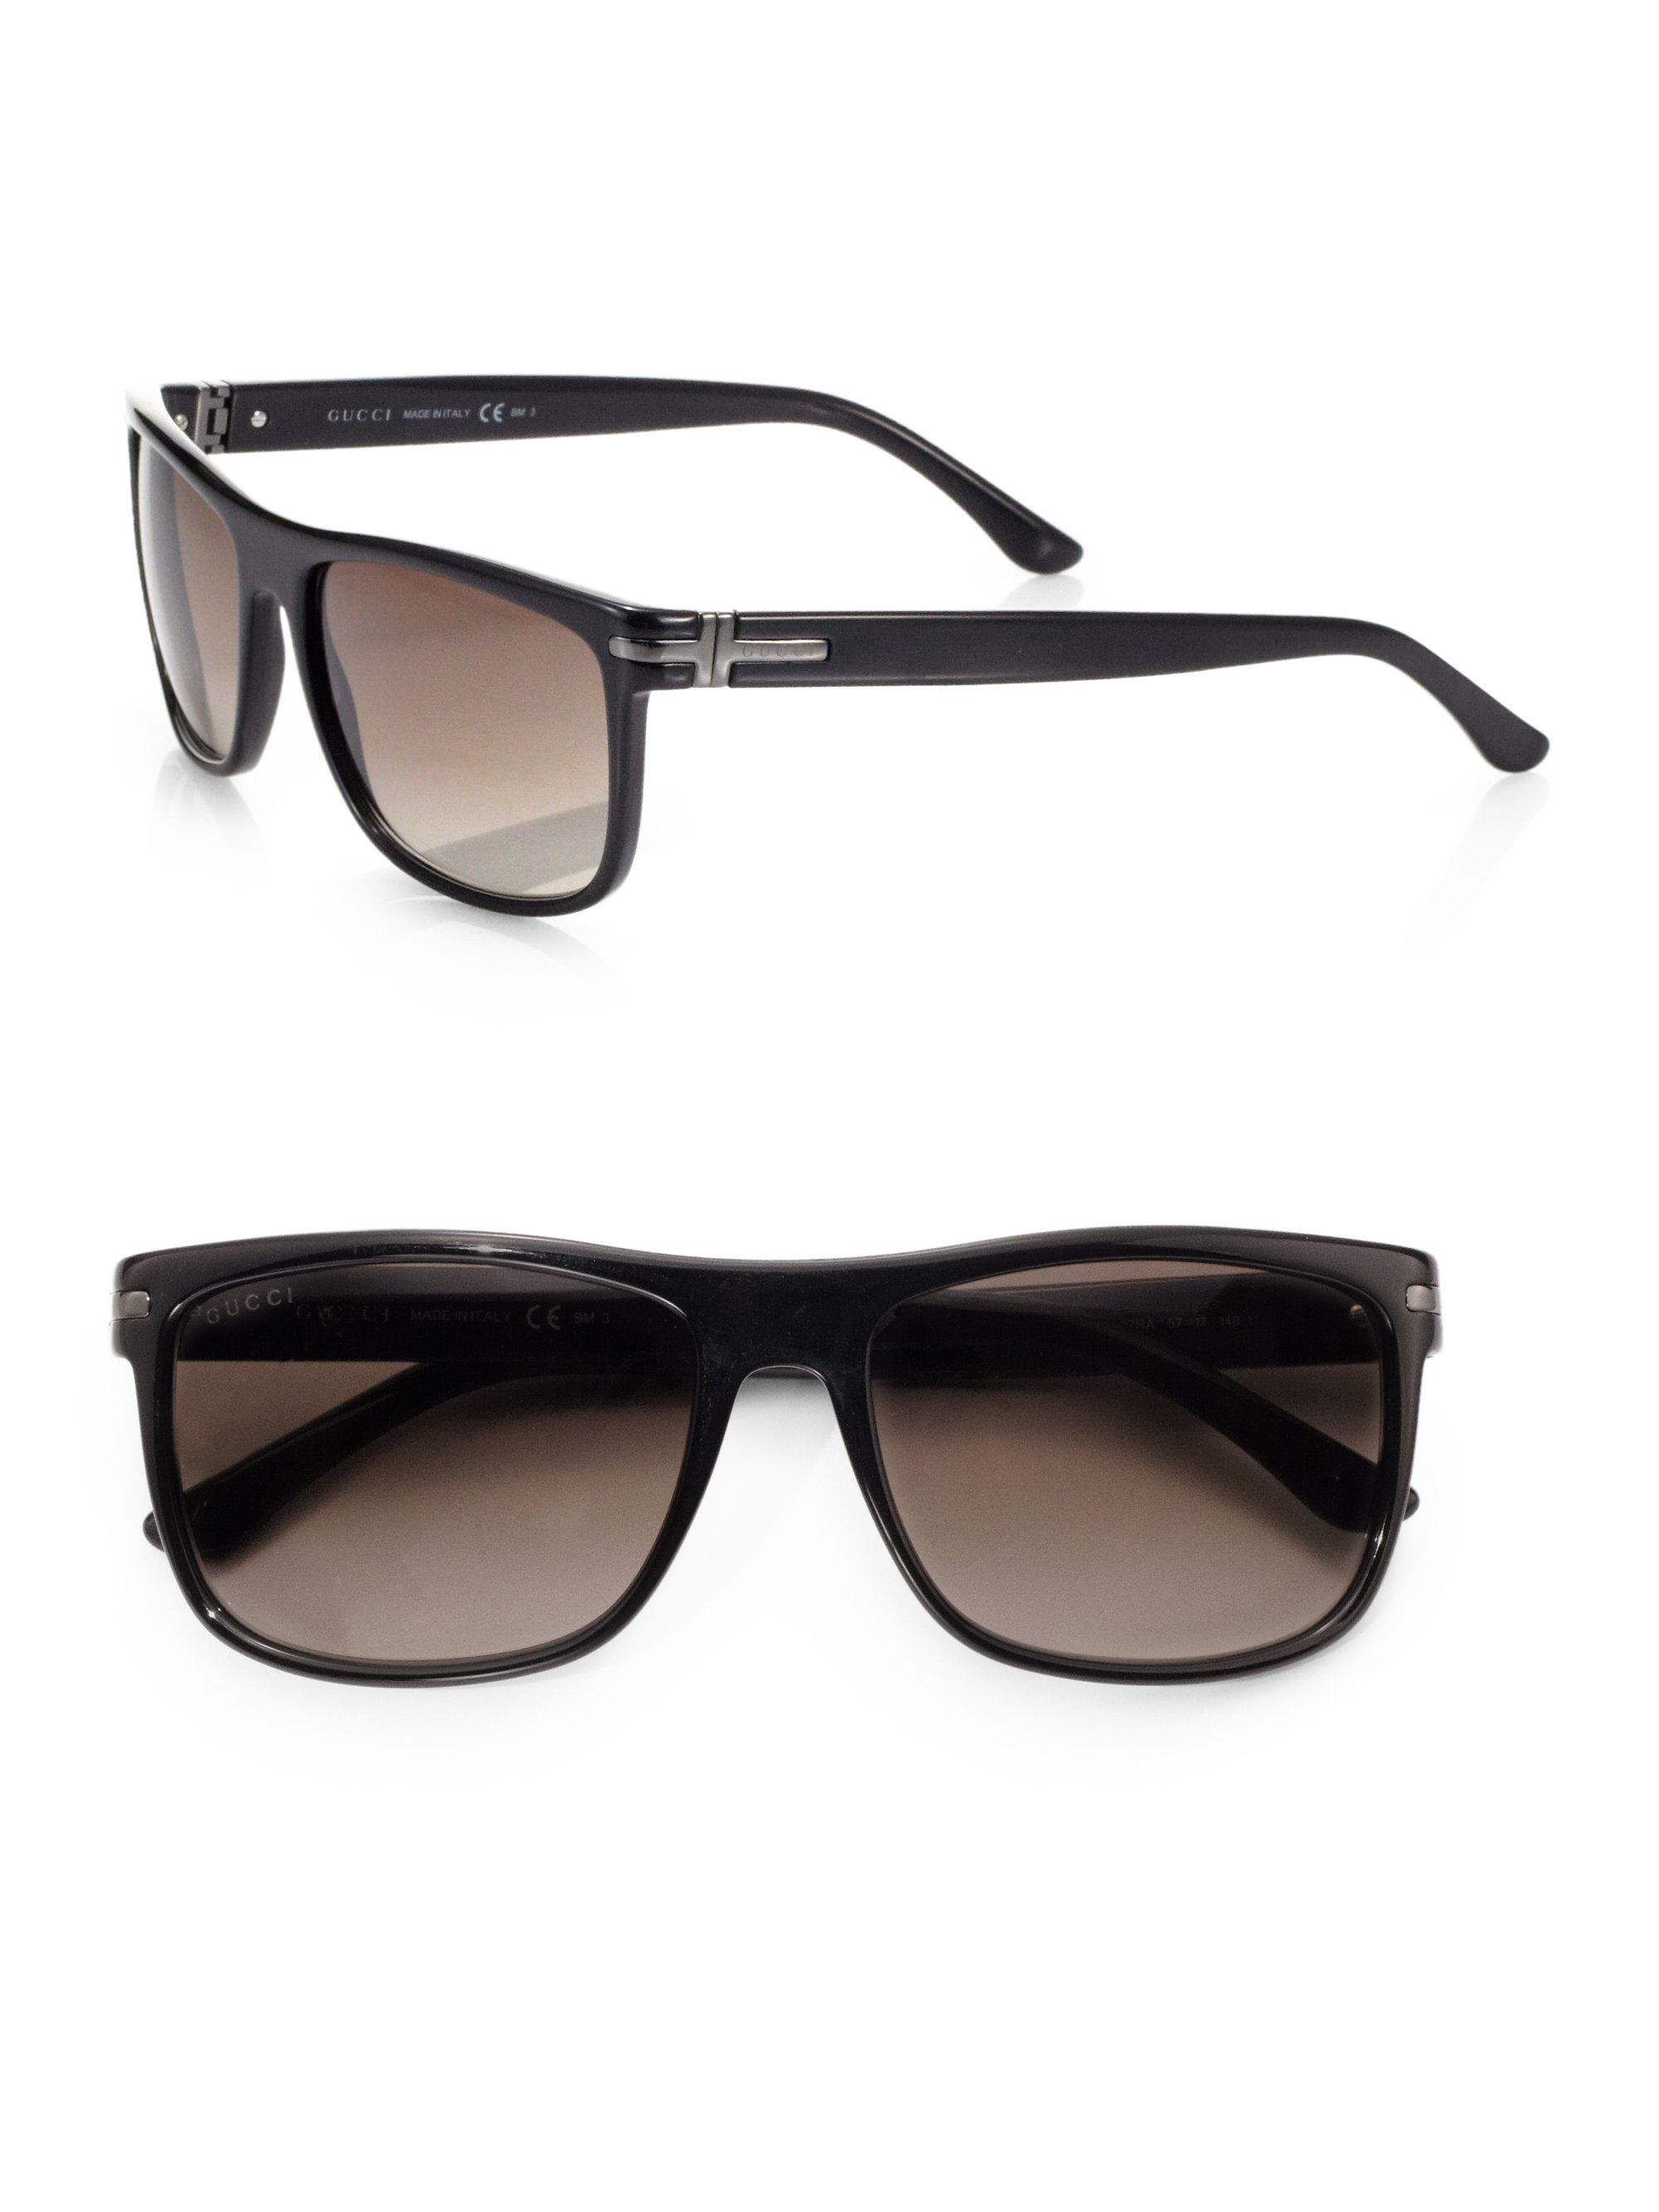 Gucci Classic Acetate Sunglasses In Black For Men Lyst